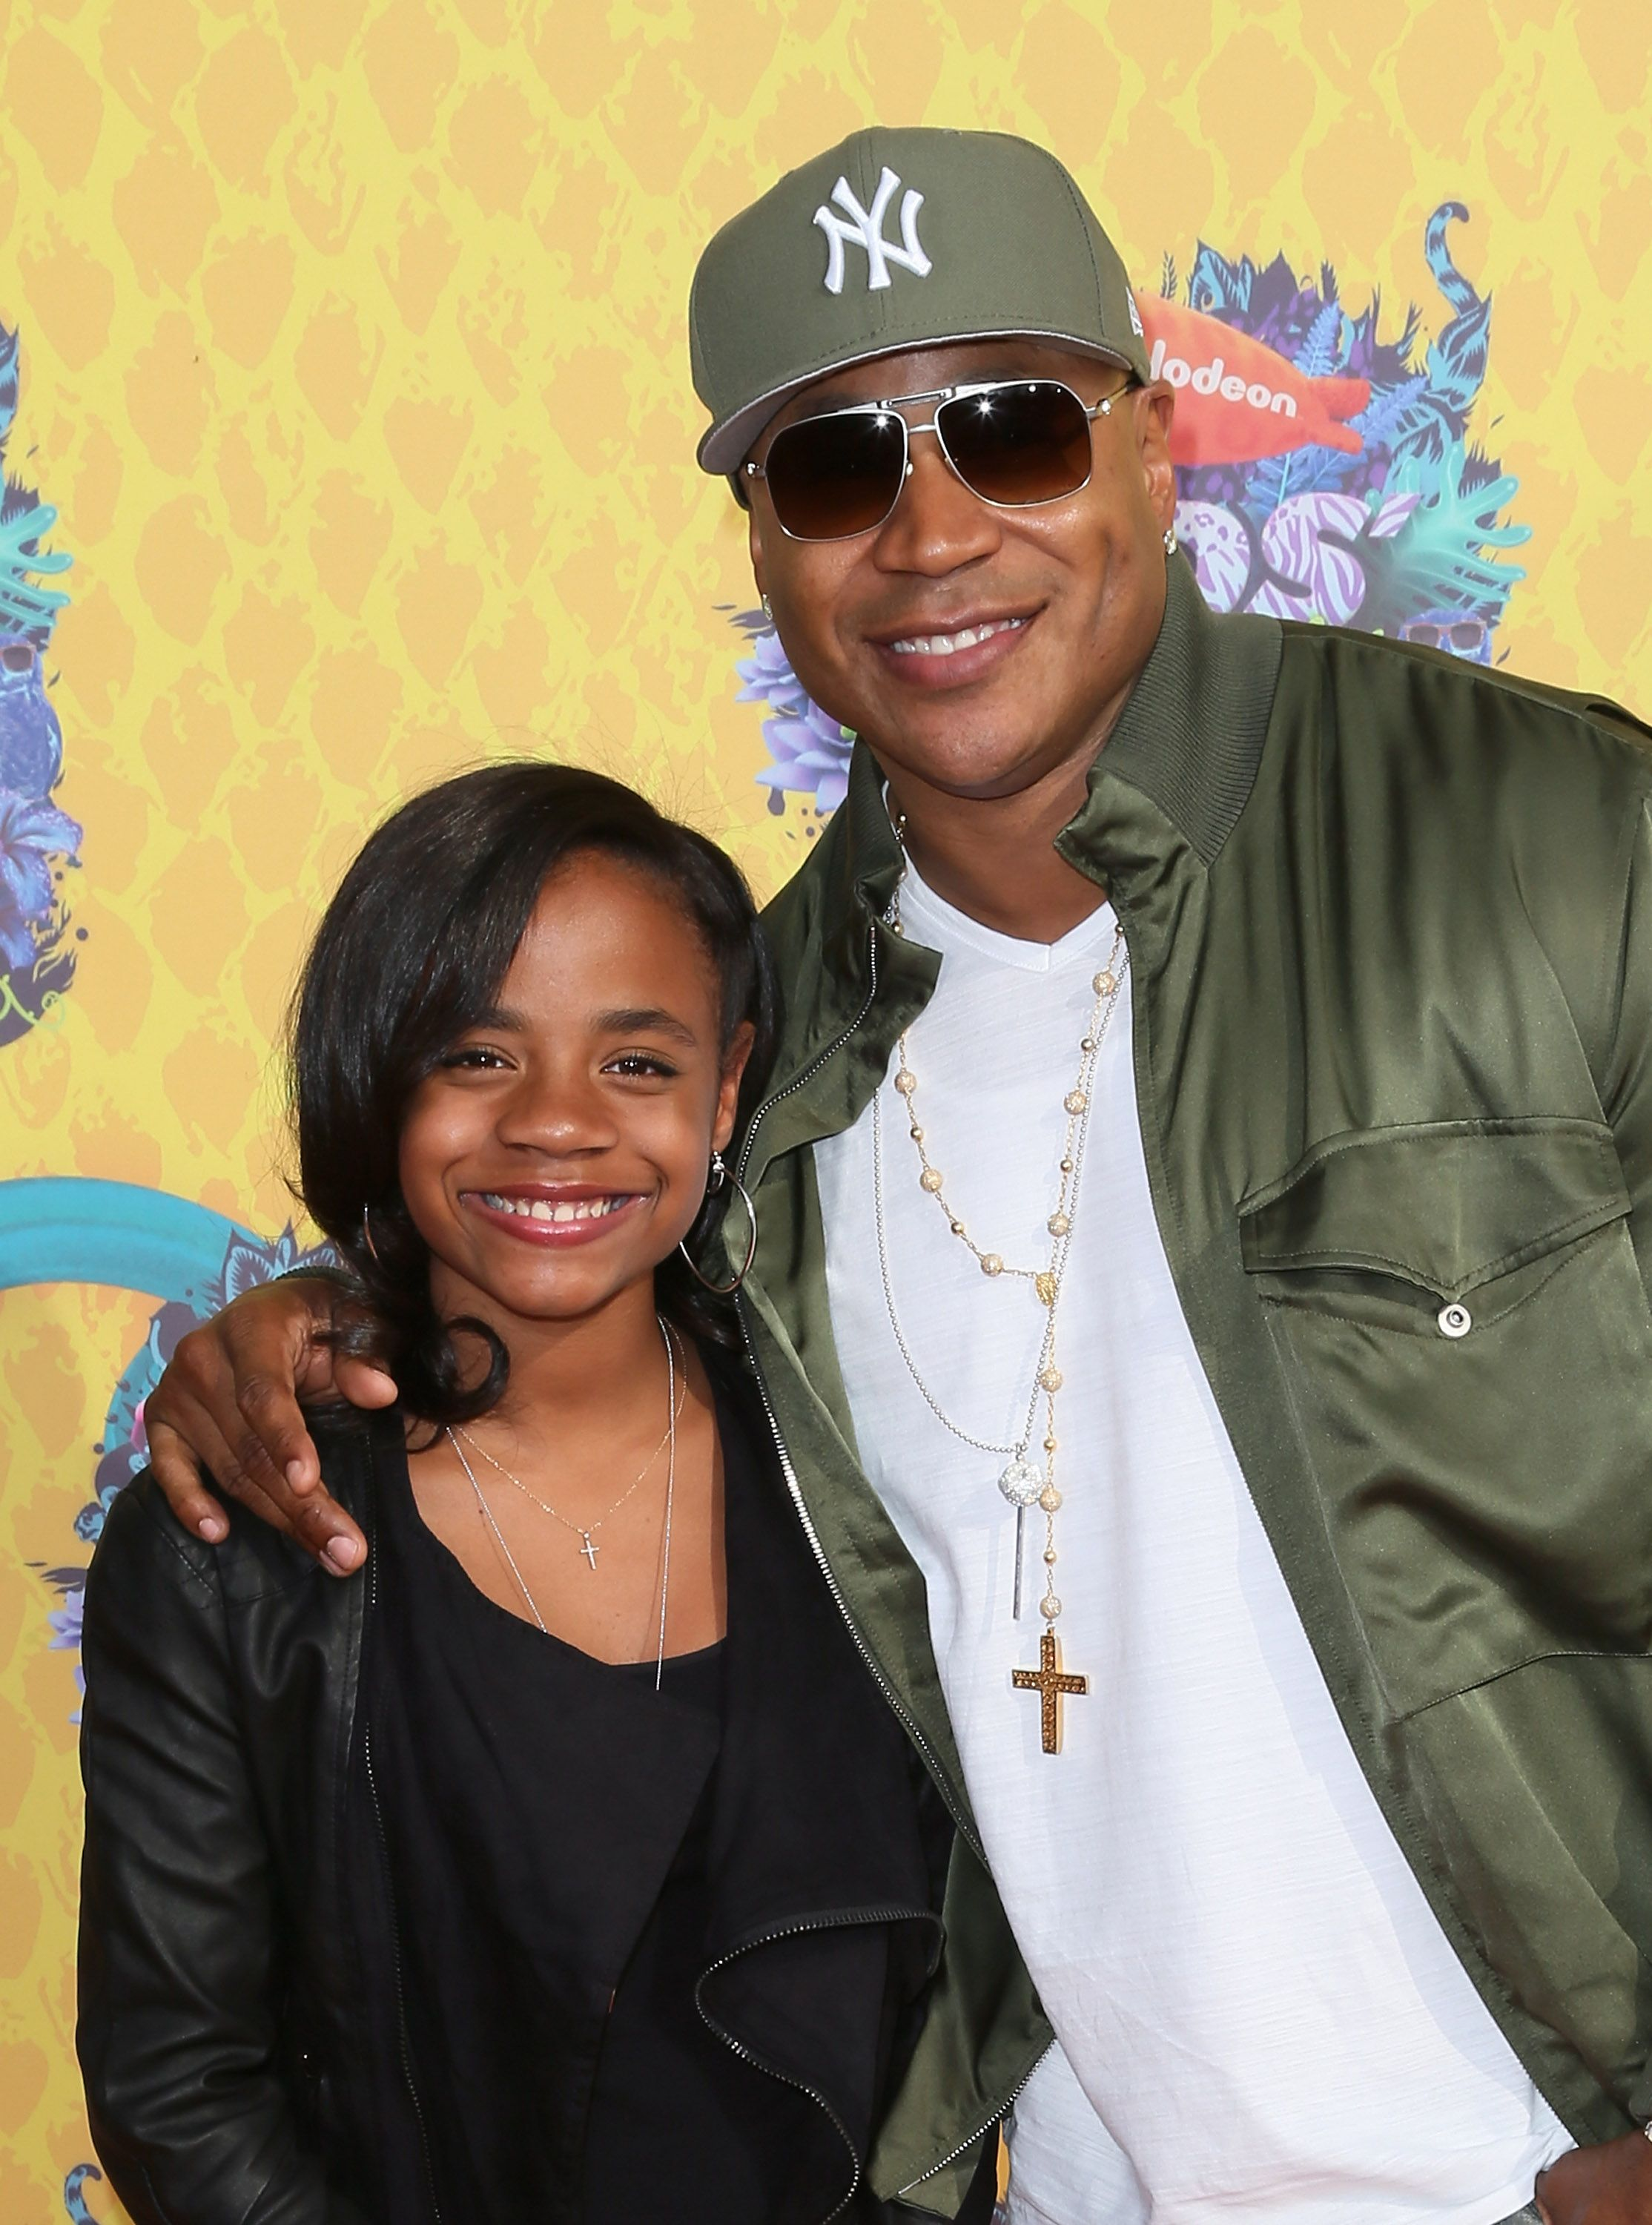 LL Cool J and Nina Simone Smith during the Nickelodeon's 27th Annual Kids' Choice Awards at USC Galen Center on March 29, 2014 in Los Angeles, California. | Source: Getty Images